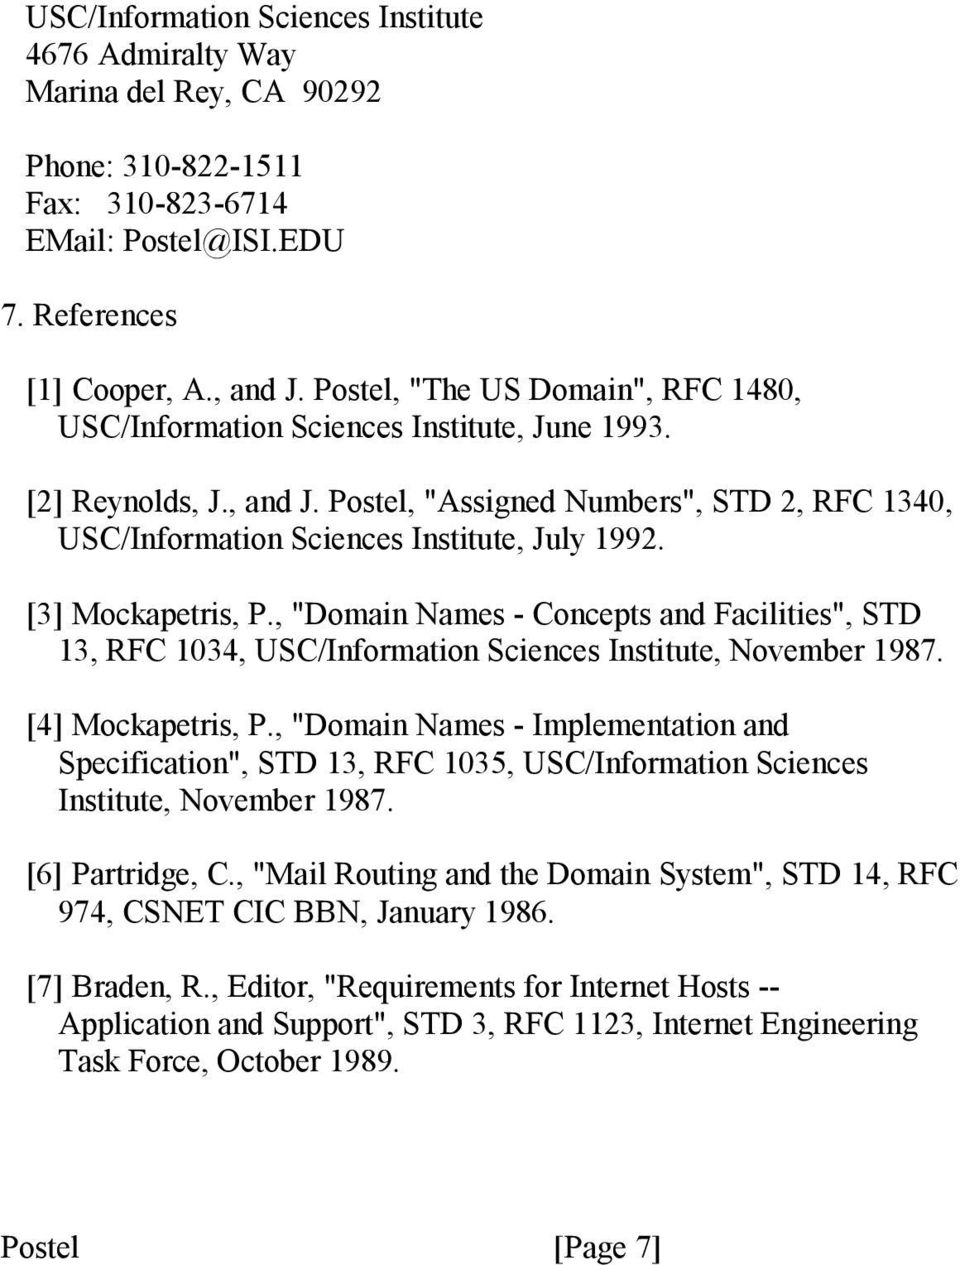 "[3] Mockapetris, P., ""Domain Names - Concepts and Facilities"", STD 13, RFC 1034, USC/Information Sciences Institute, November 1987. [4] Mockapetris, P."